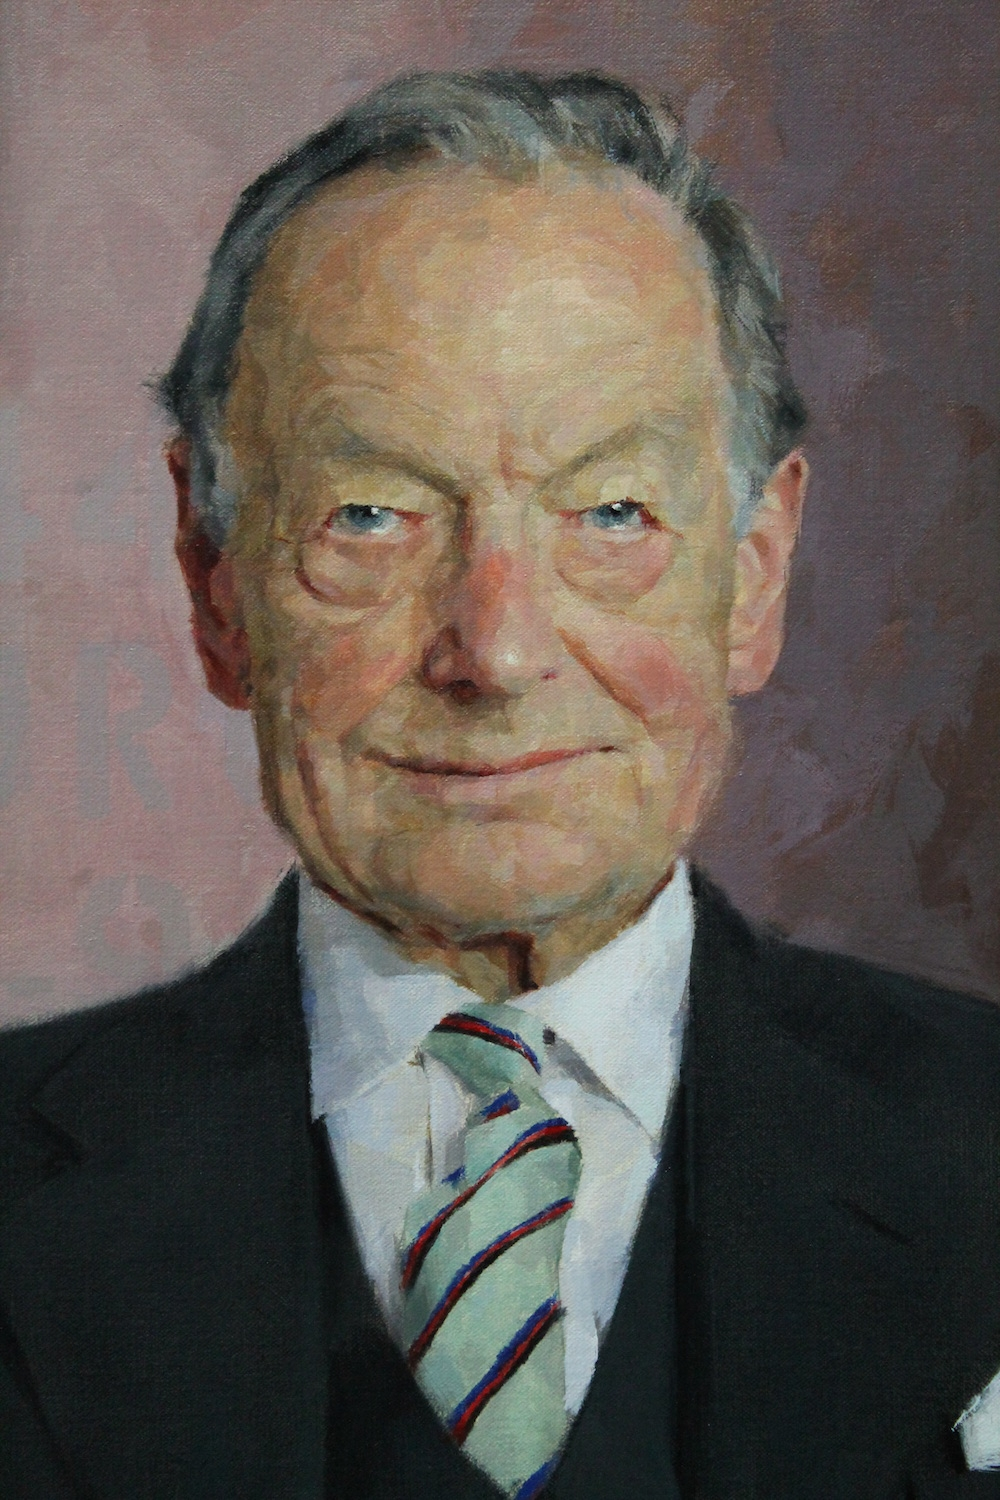 Royal society of portrait painters annual exhibition 2016 mall the rt hon sir stephen brown gbe president of the malvernian society courtesy of malvern college keith breeden rp publicscrutiny Choice Image